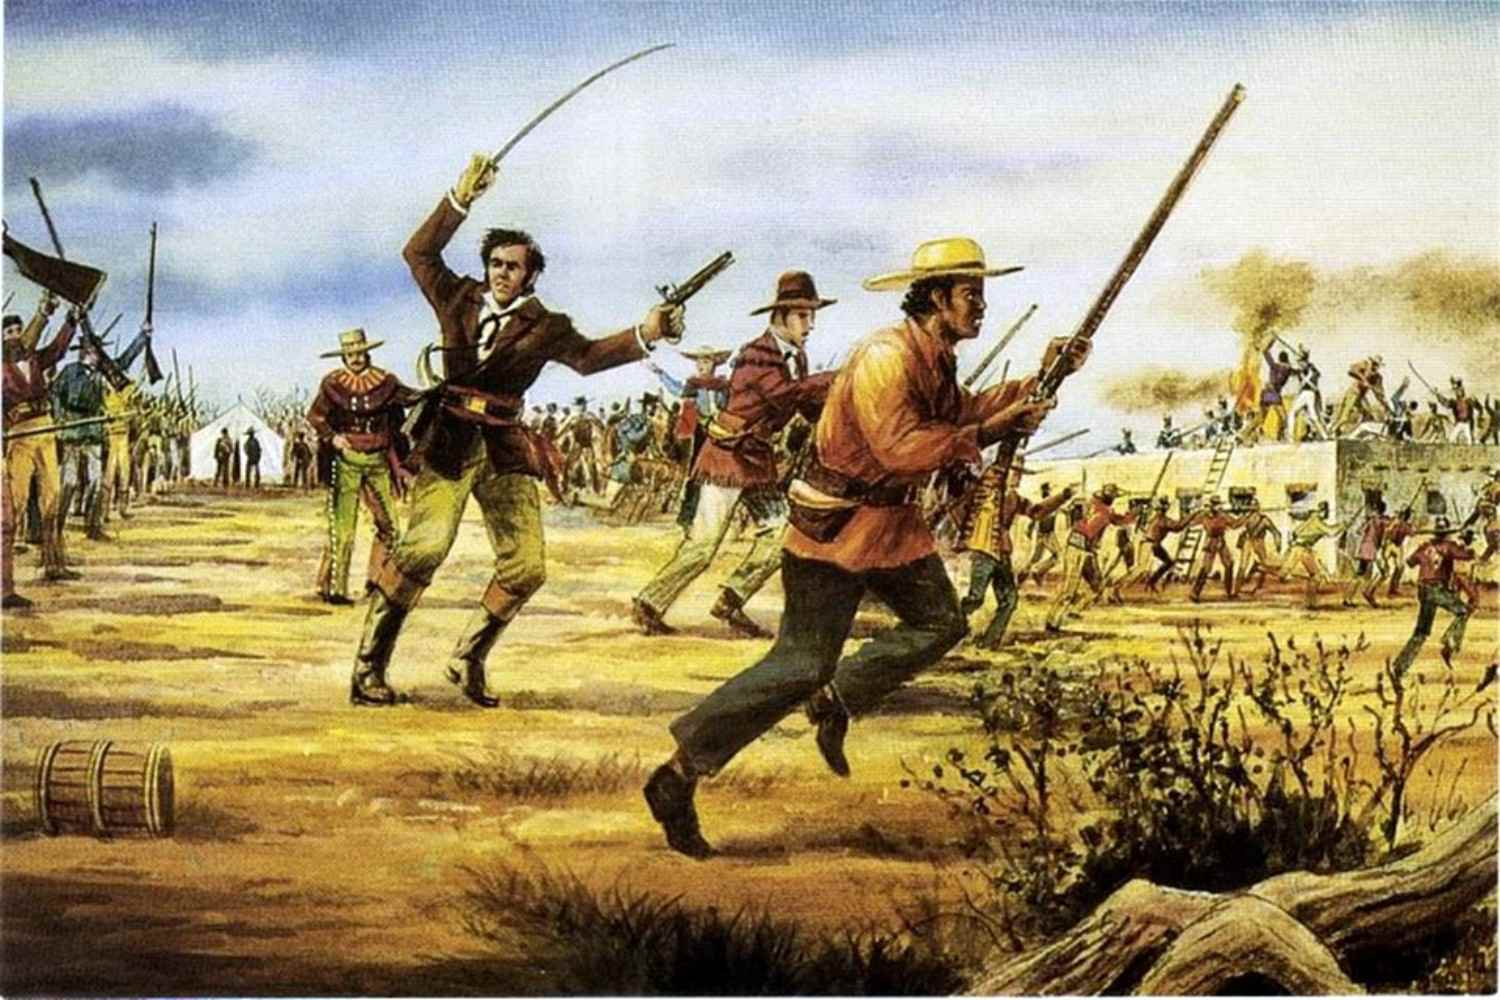 A mural depicting the Siege of San Antonio, with Hendrick Arnold in the foreground